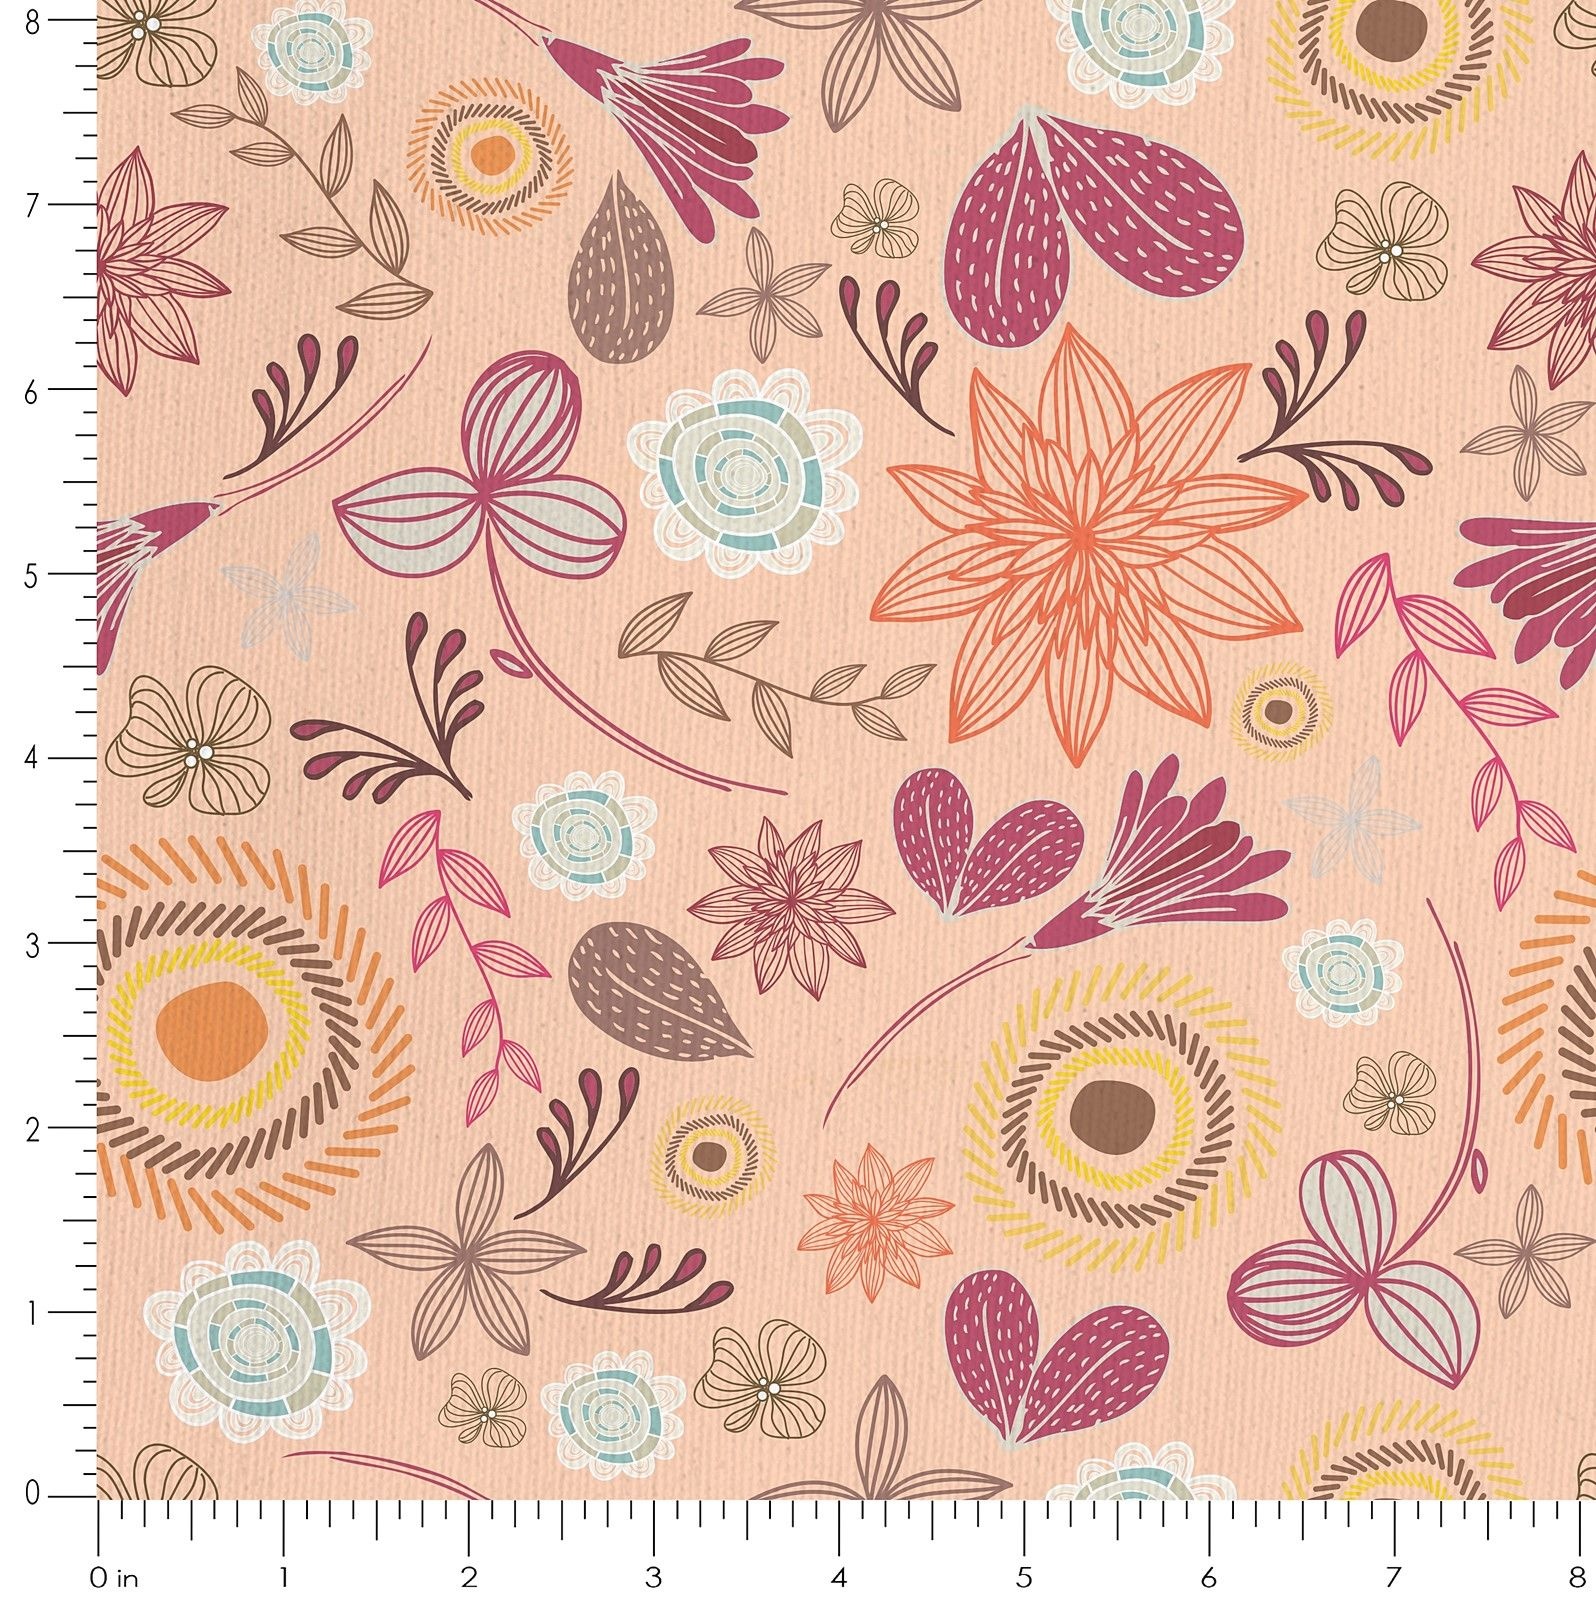 Buy Floral 100 Cotton Fabric For Sofa Curtains Cushions More Online India Online Floral 100 Cotton Fab Cushion Fabric Online Floral Painted Table Tops